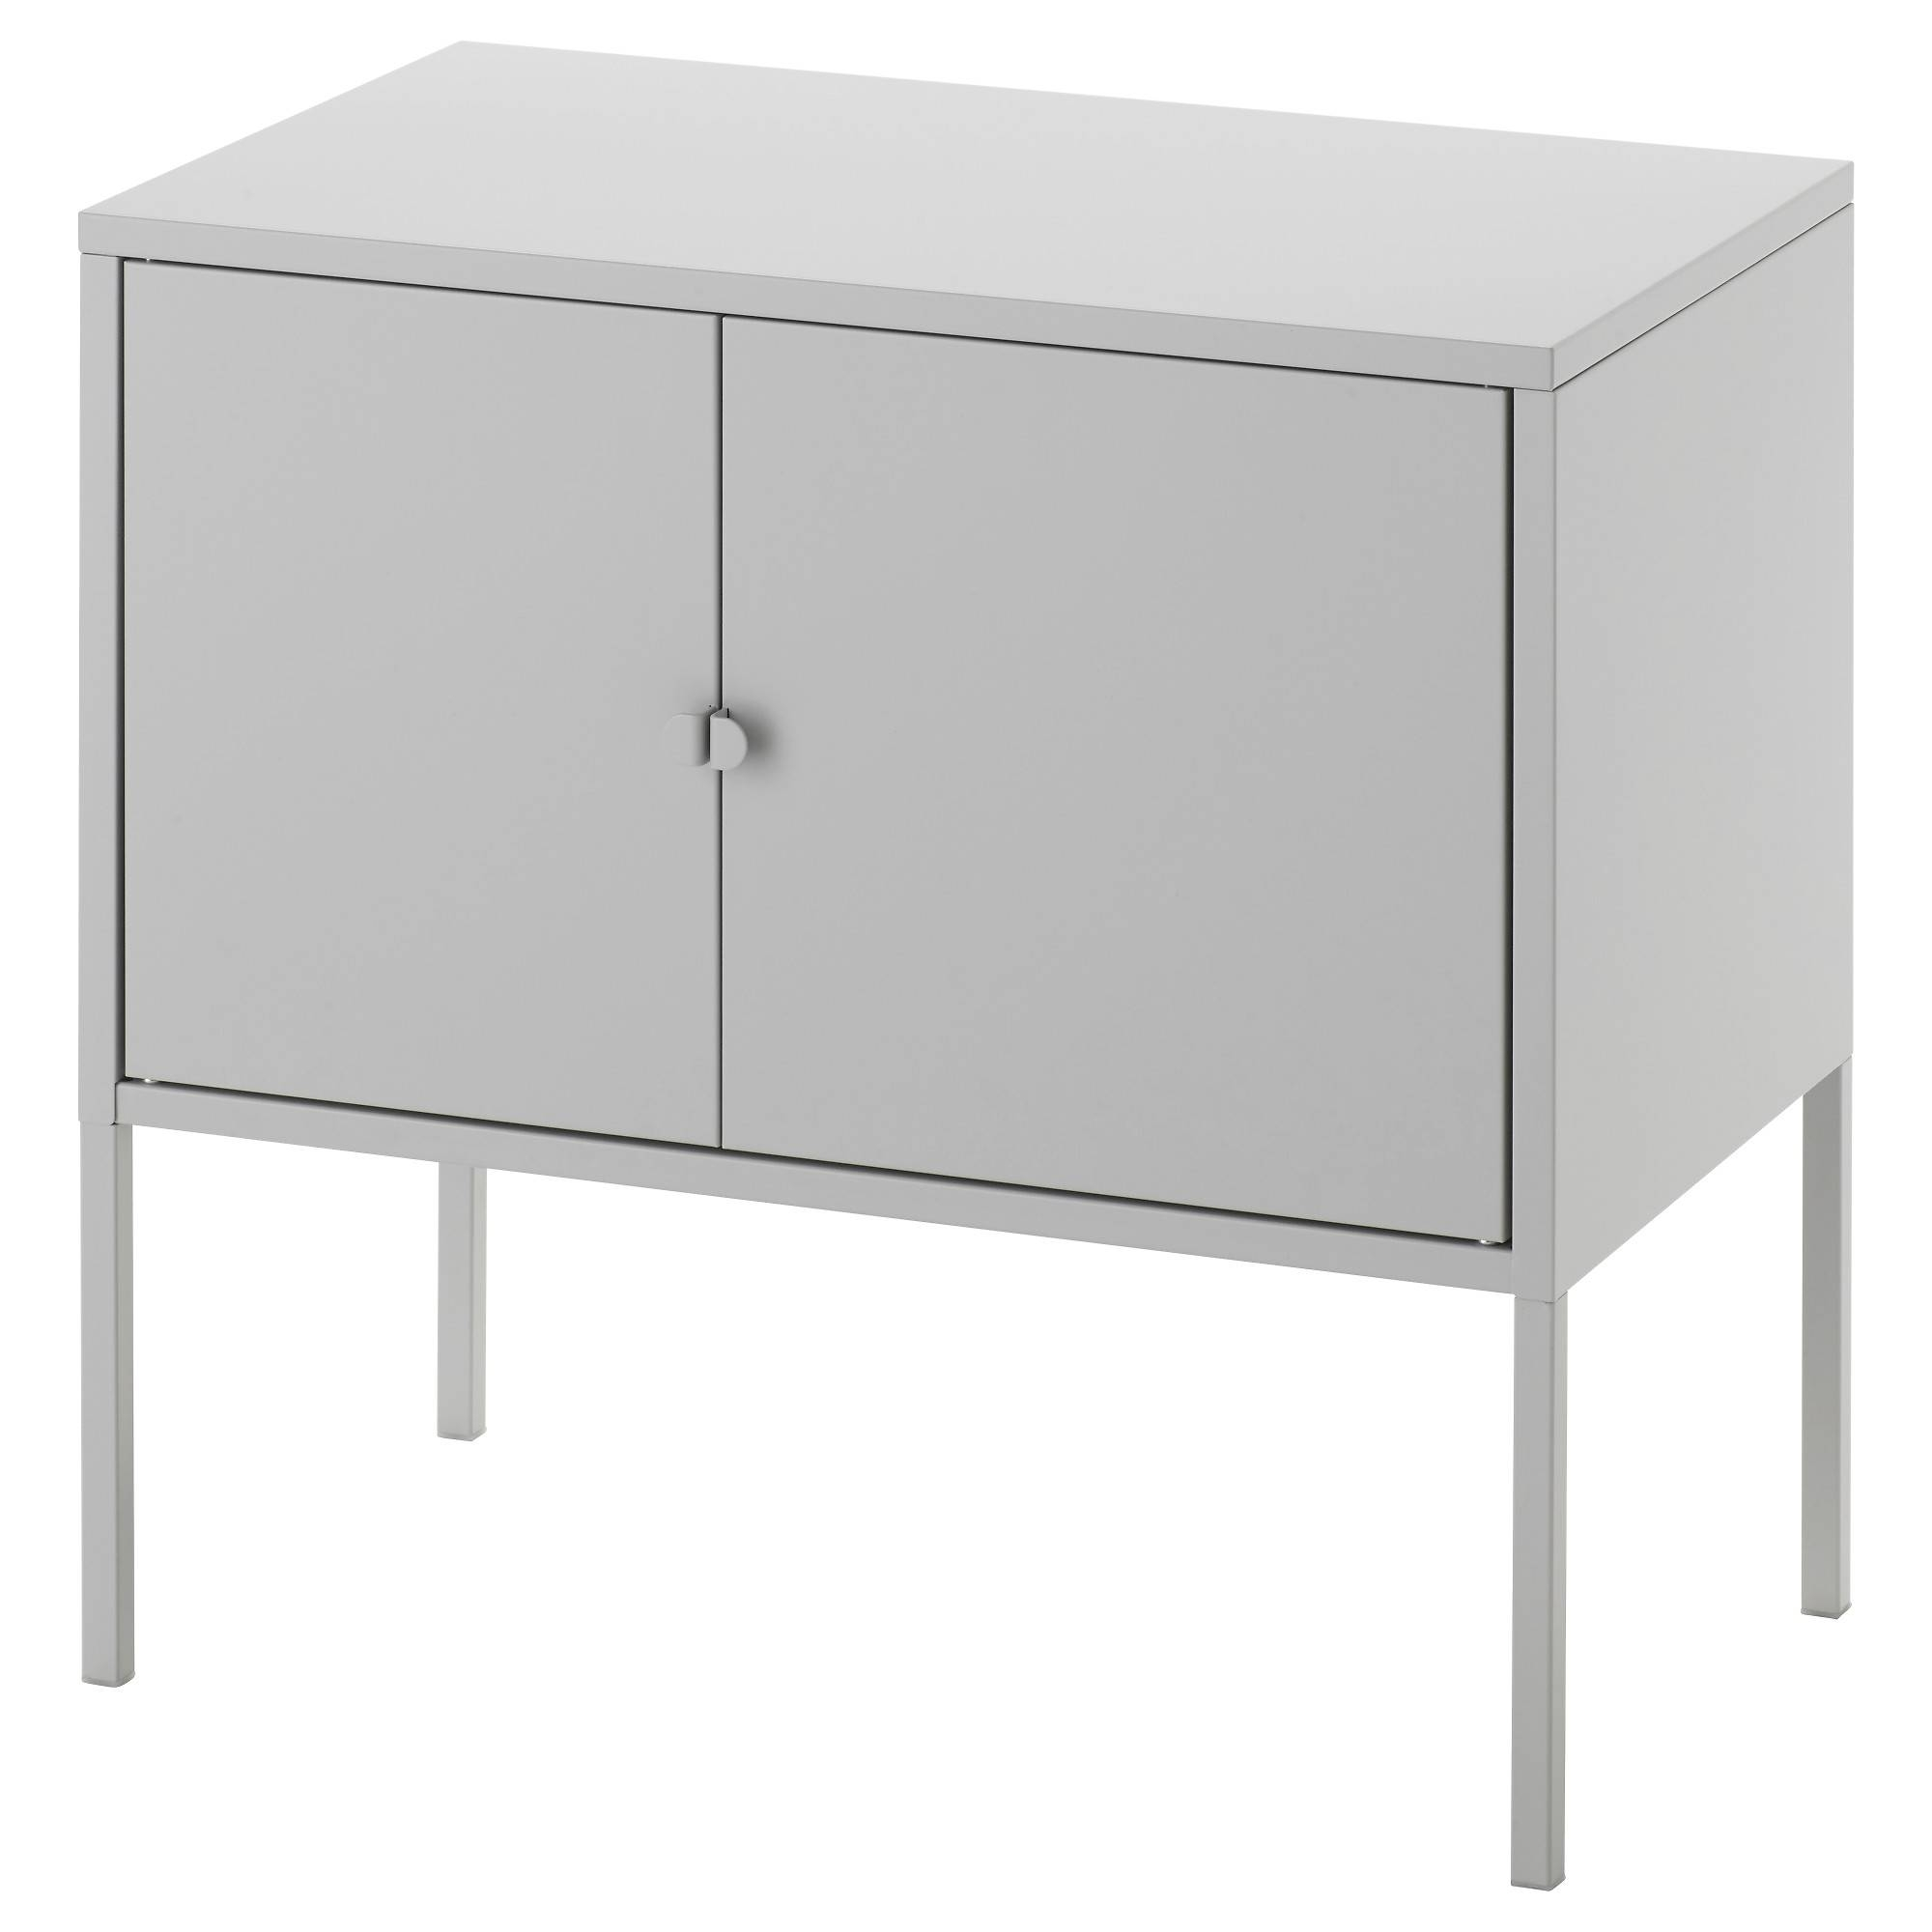 Cabinets & Sideboards – Ikea In White Sideboard Cabinets (View 14 of 15)